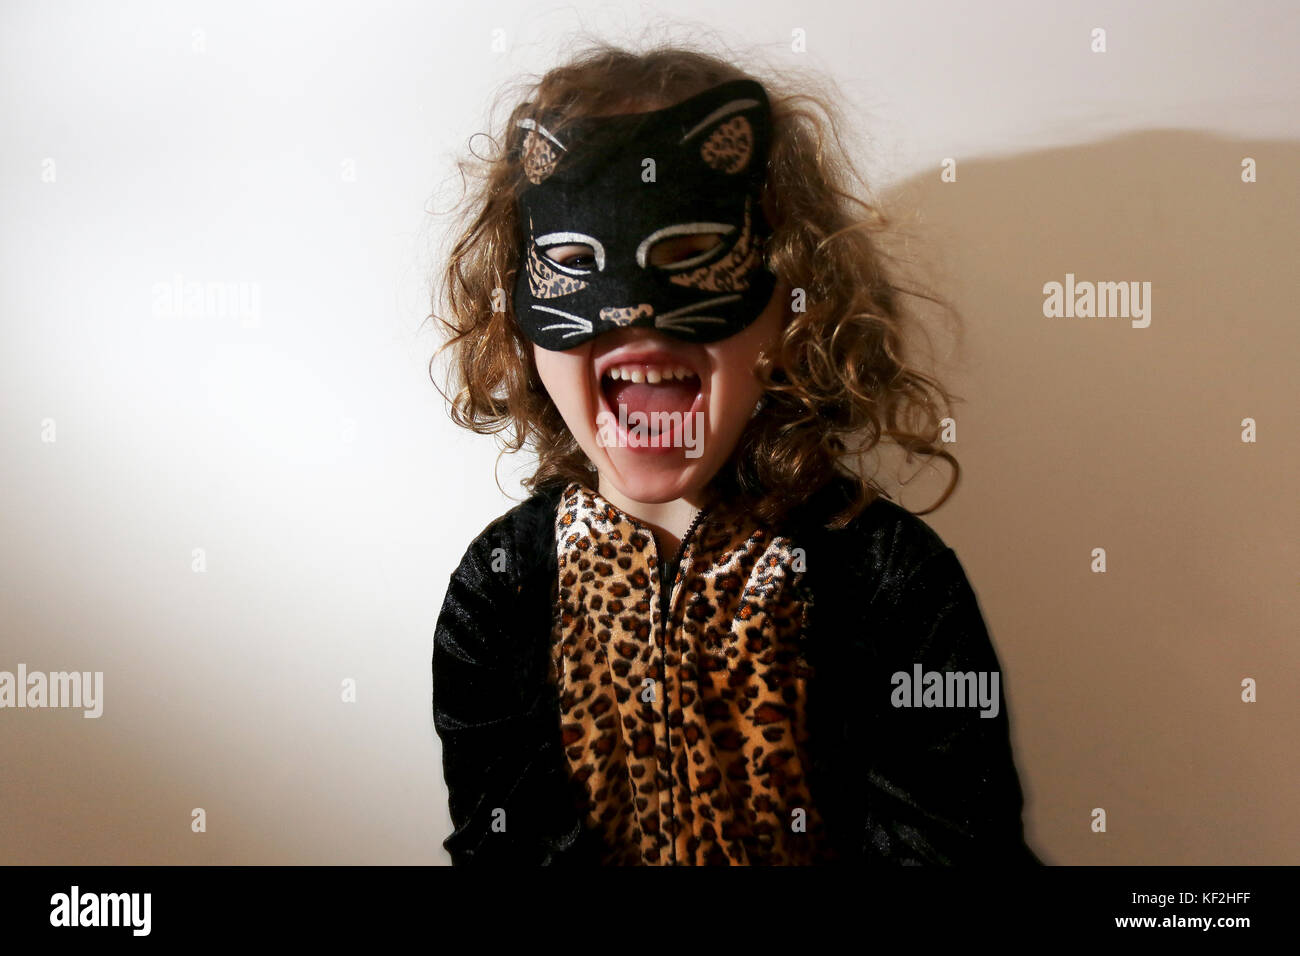 A young 5-year-old girl pictured dressed up as a cat for Halloween fun and celebrations in Chichester, West Sussex, - Stock Image